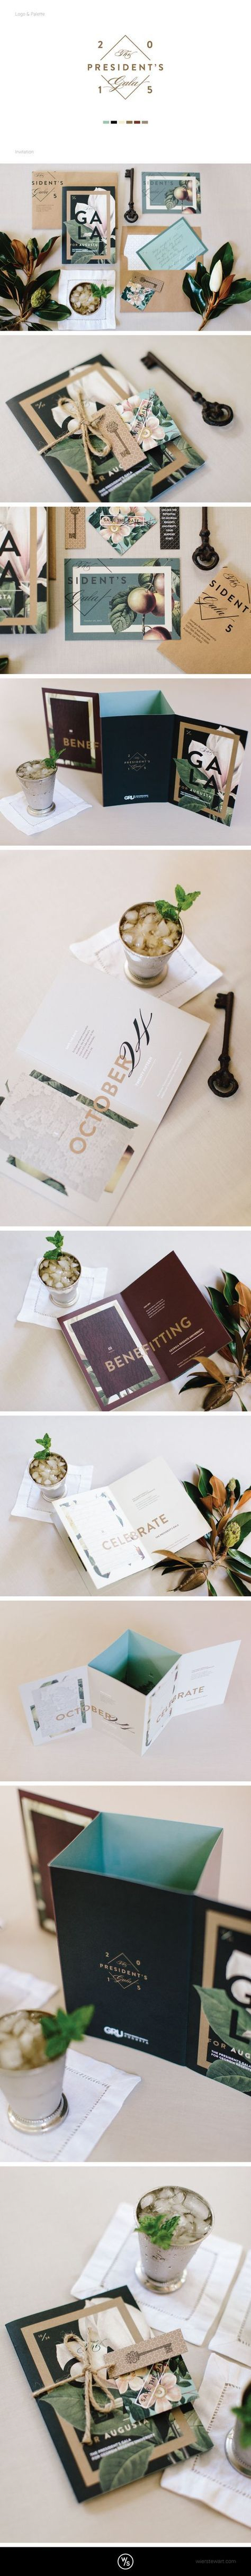 I know how much you love branding guys! I love it too, this week I want to share with you this beautiful collection of branding so you can get inspired. Enjoy!